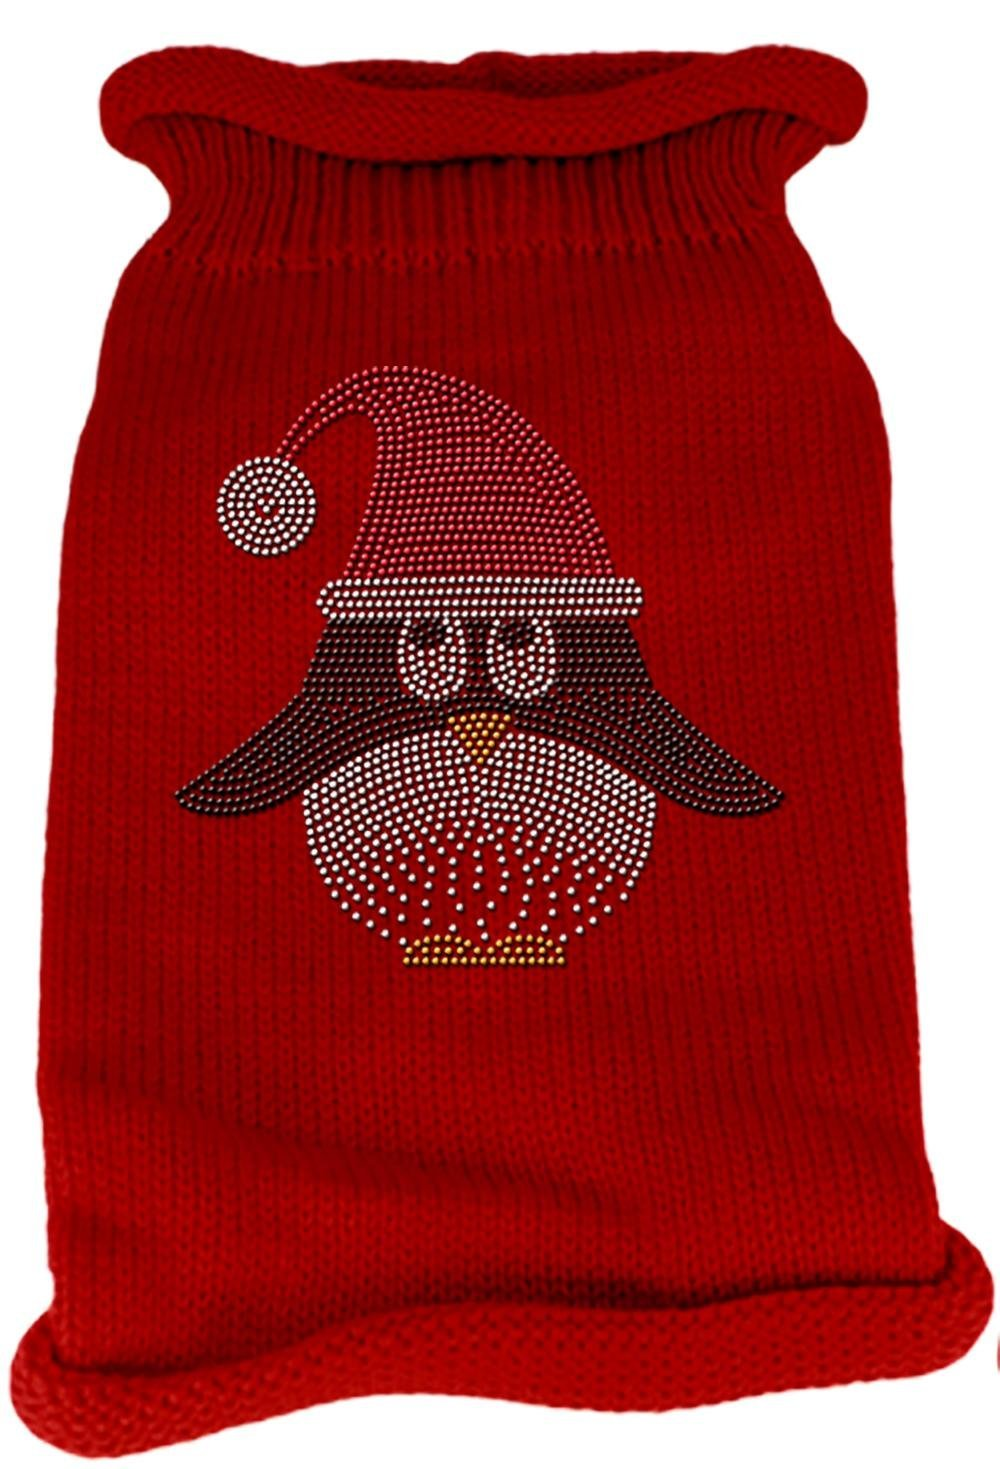 Mirage Pet Products Santa Penguin Rhinestone Knit Pet Sweater, Small, Red